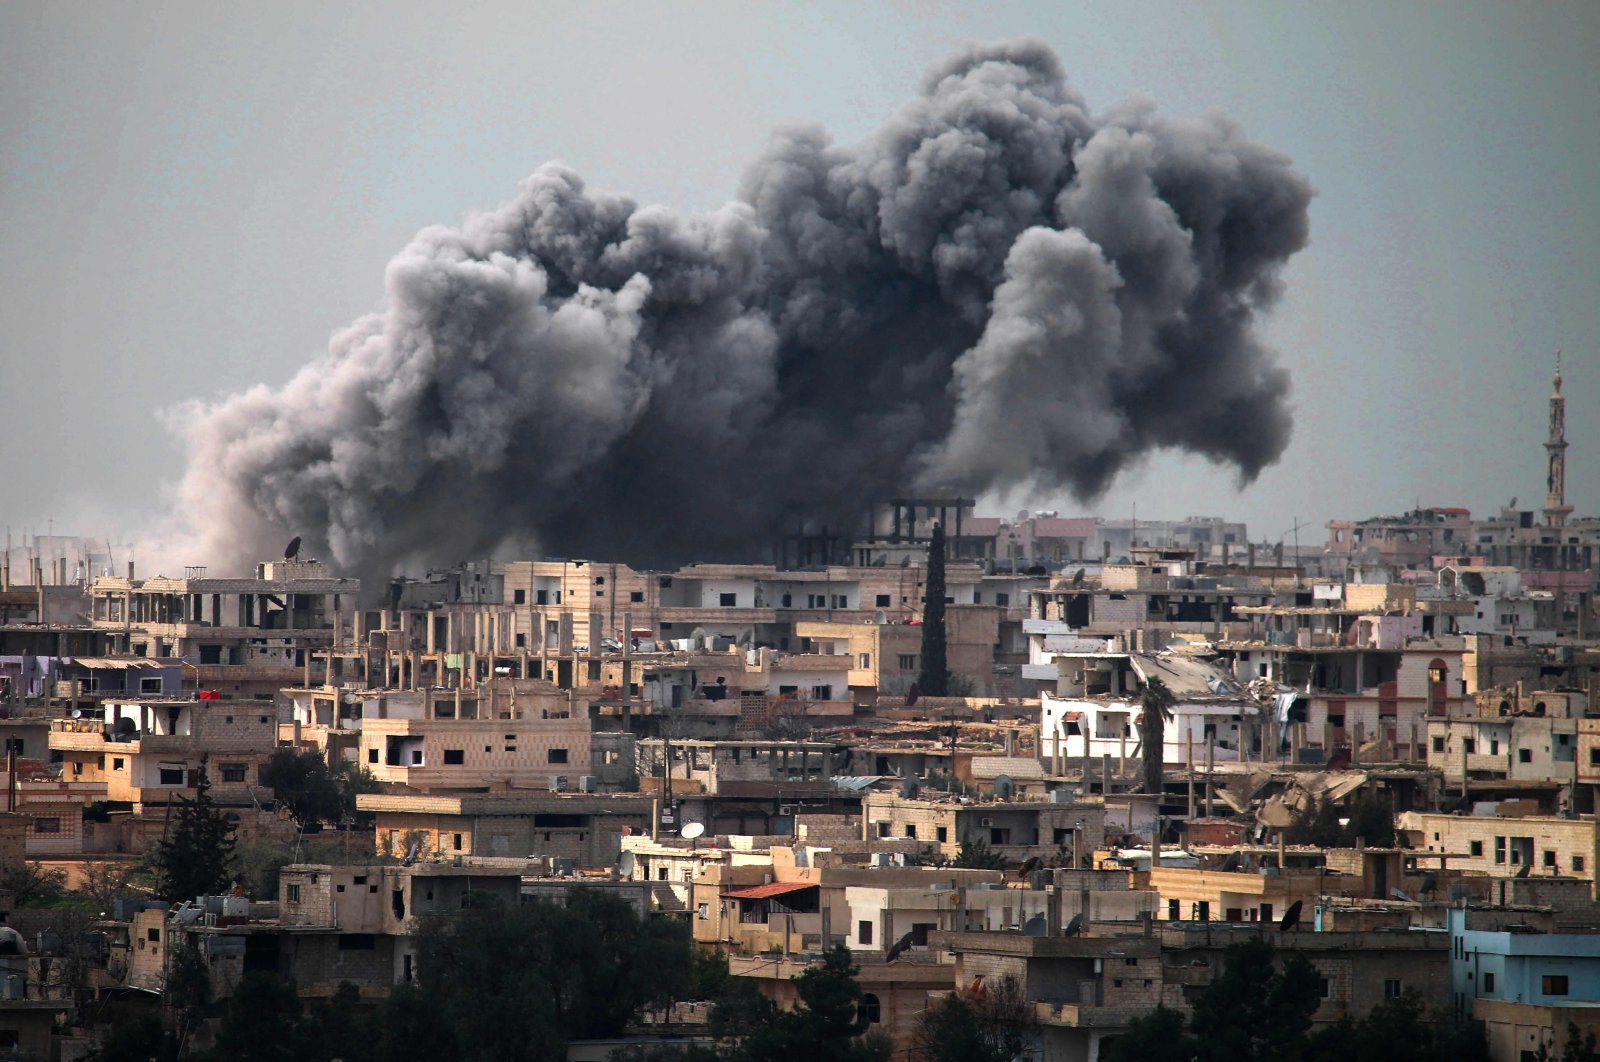 Smoke billows following reported airstrikes on a rebel-held area in the southern city of Daraa, Syria, March 16, 2017. (AFP File Photo)